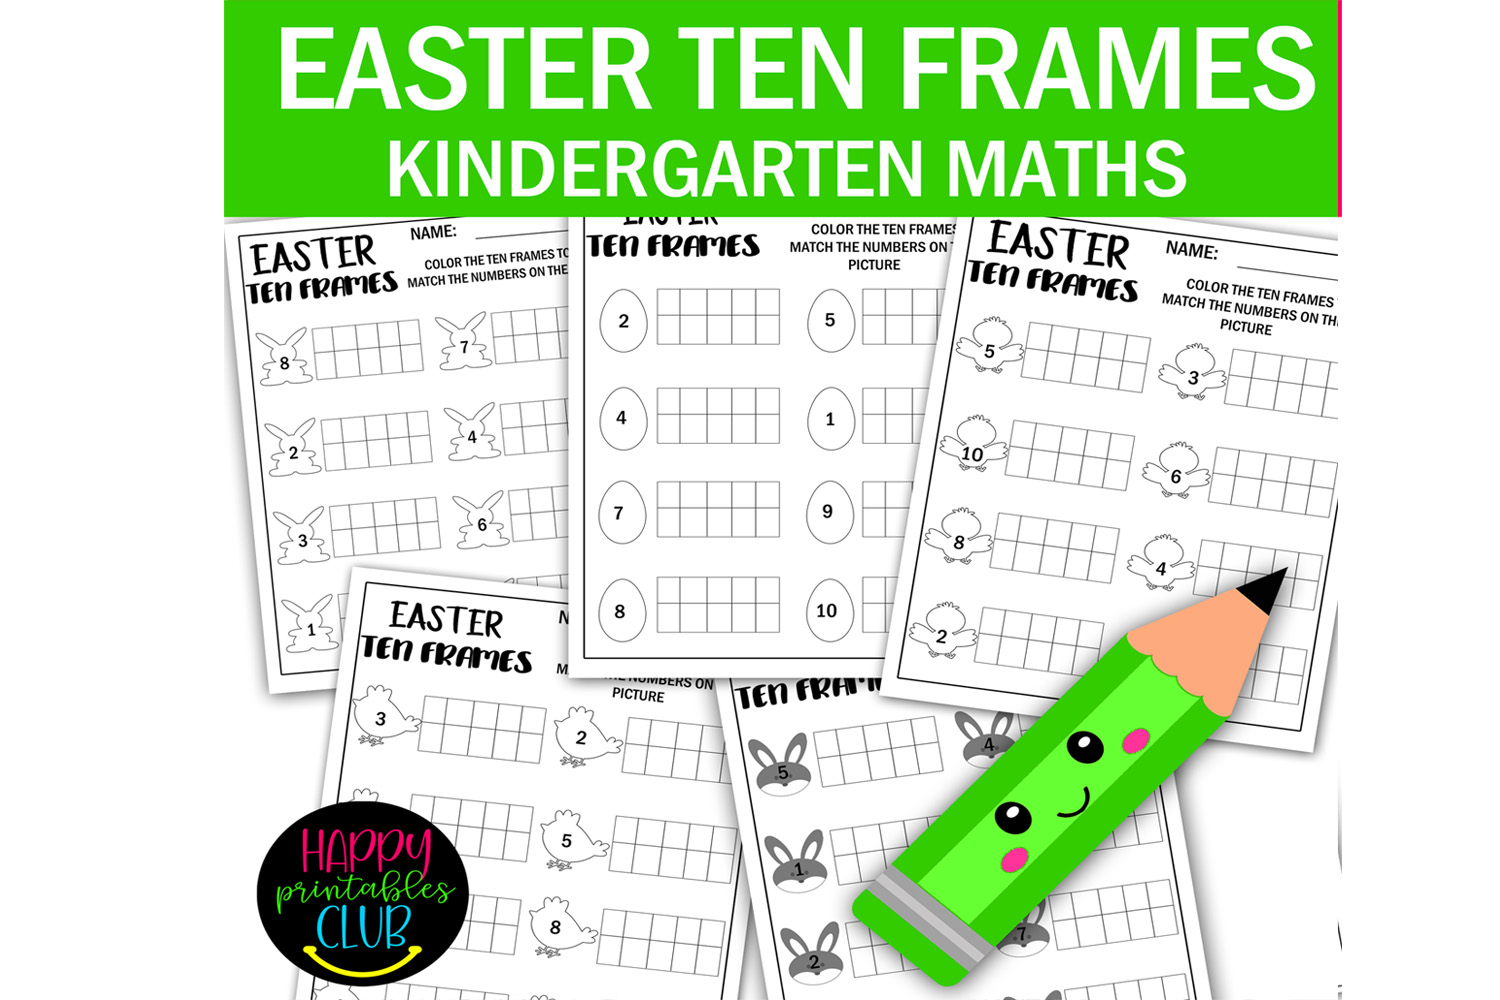 Easter Ten Frames Math Worksheets Graphic By Happy Printables